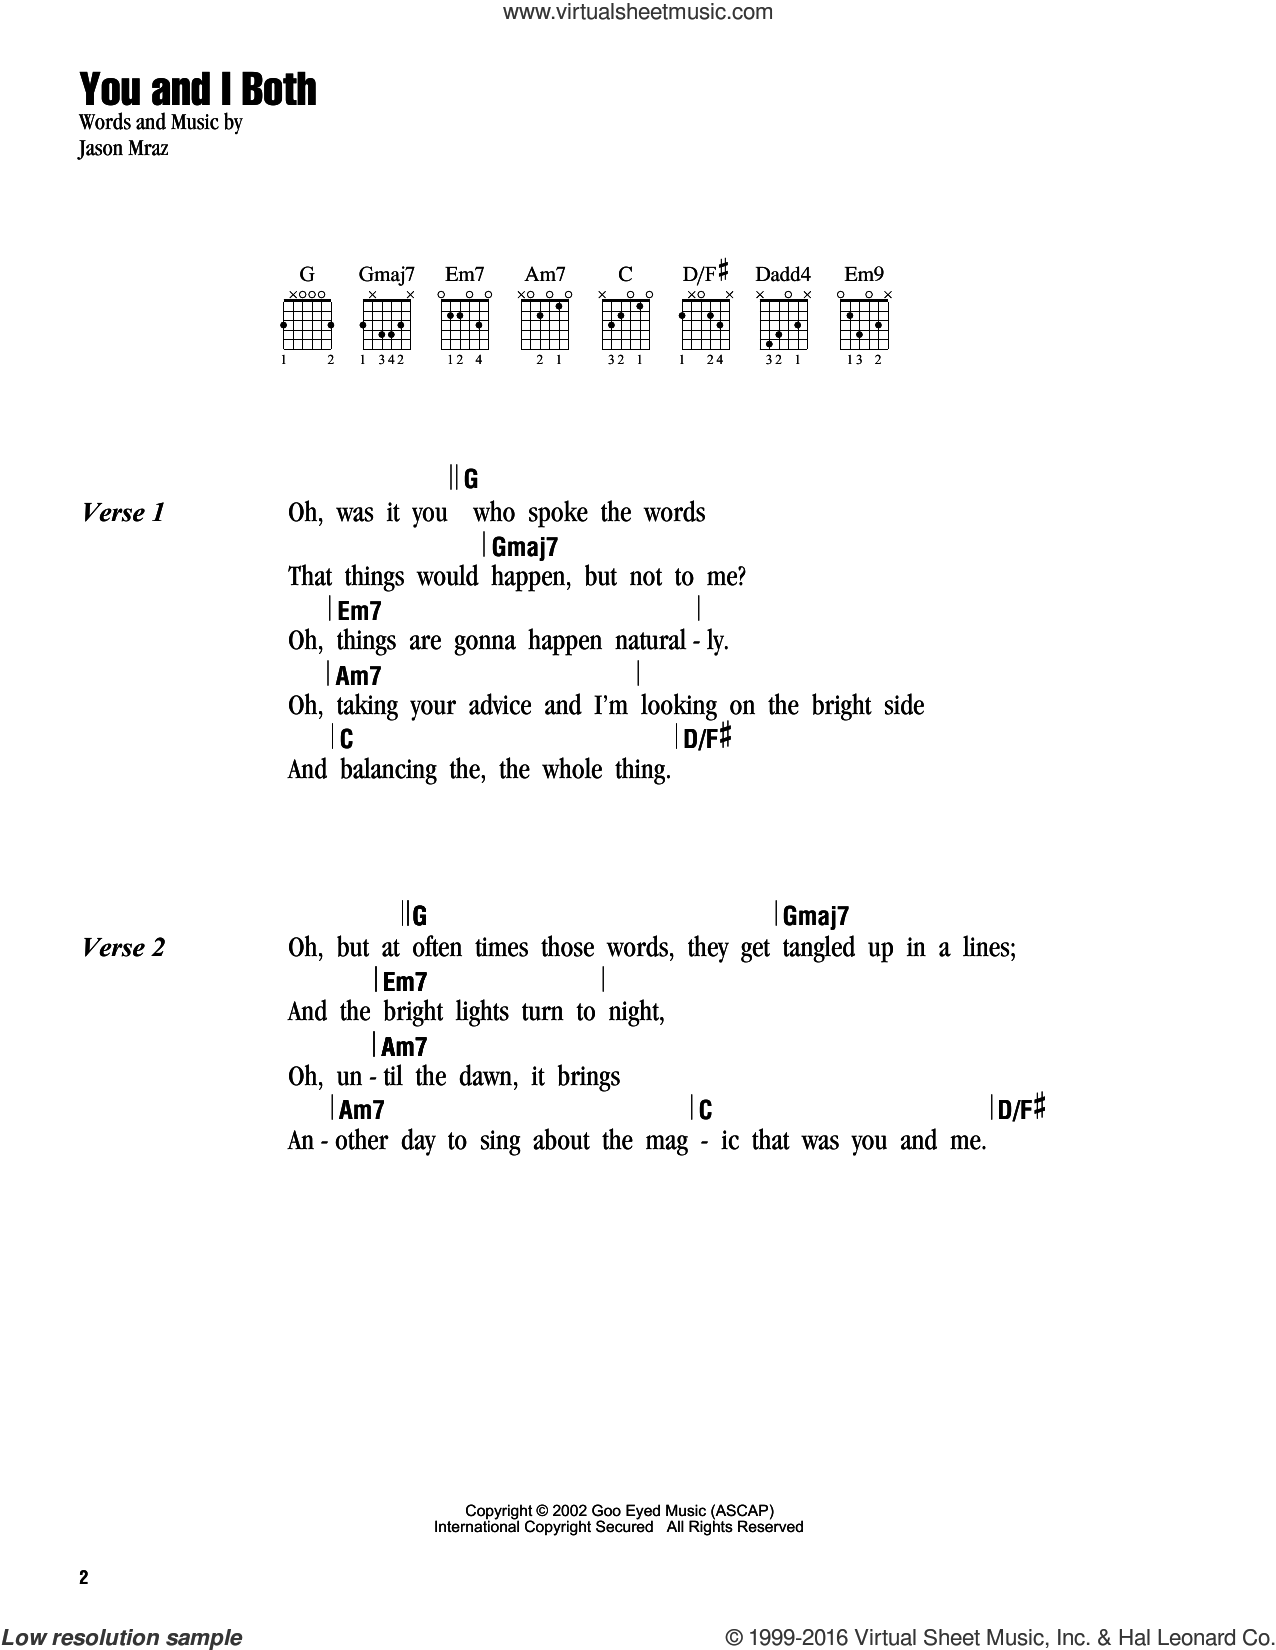 You and I Both sheet music for guitar (chords) by Jason Mraz